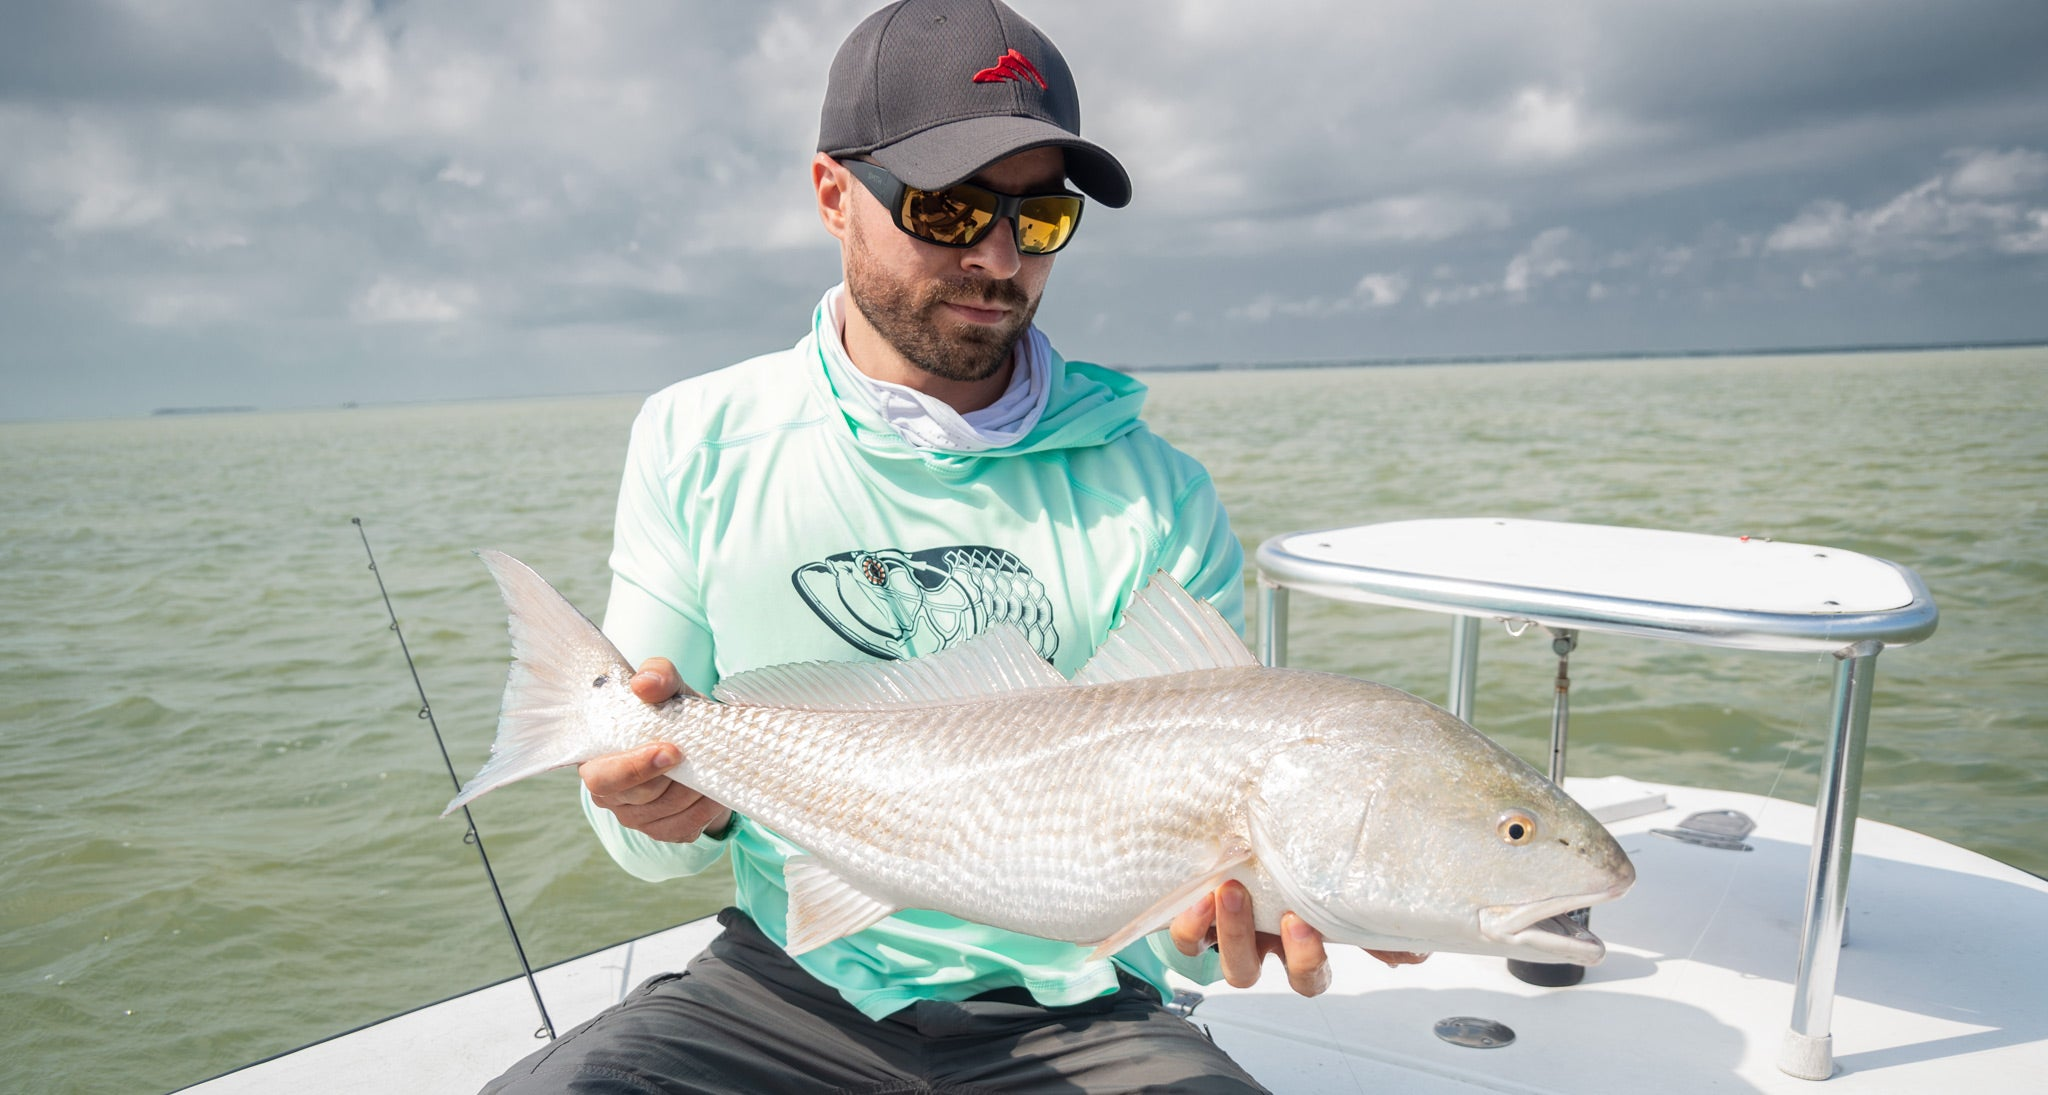 Wicked Catch holding redfish wearing Super Fly Tarpon performance fishing hoodie shirt